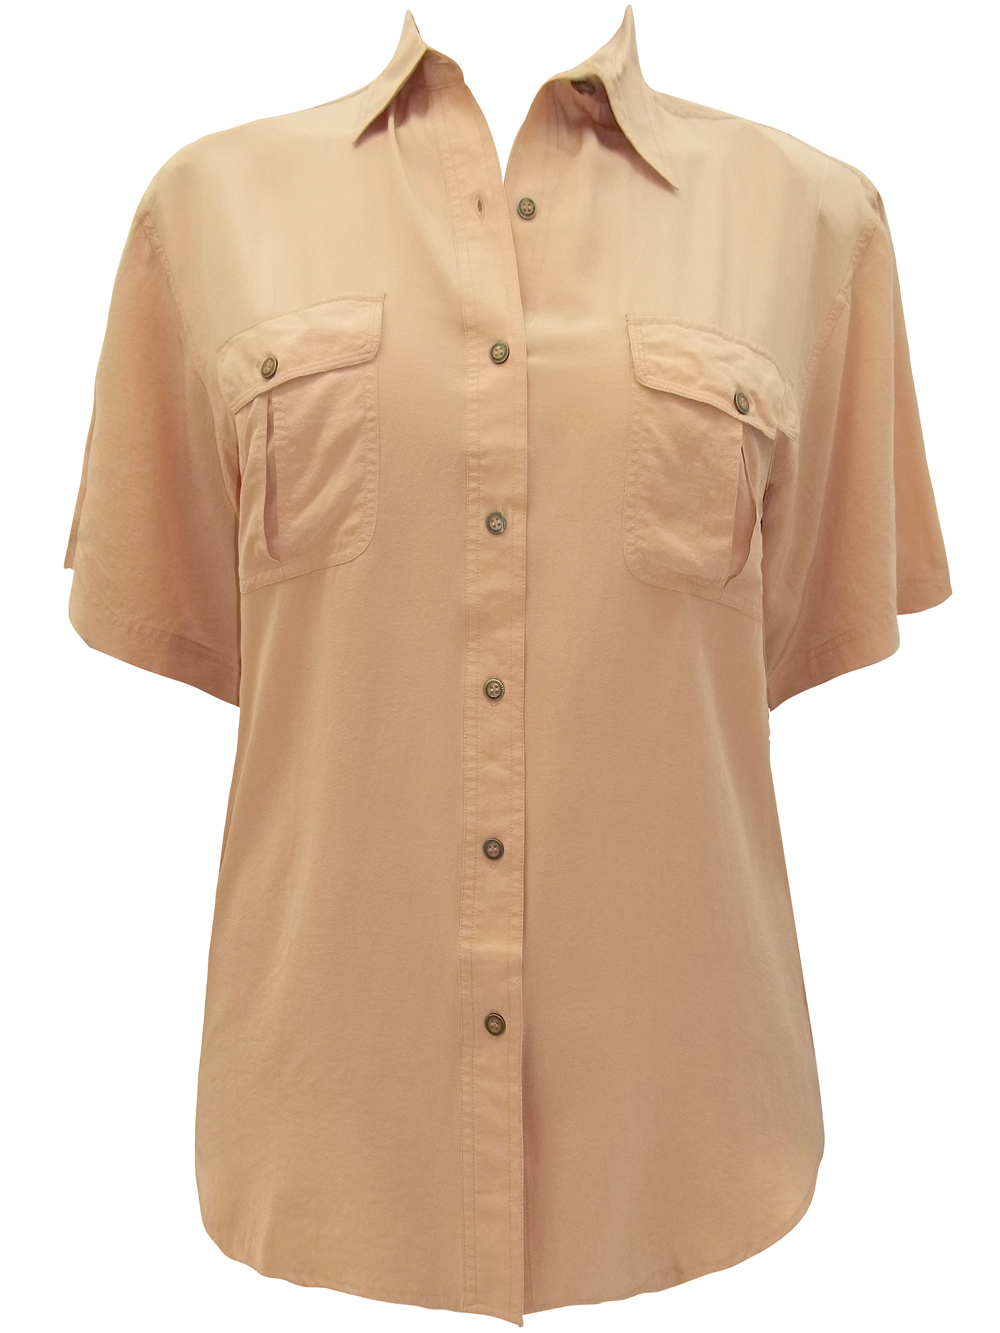 All Silk PEACH Twin Breast Pocket Short Sleeve Shirt - UK Size 12/14 to 16/18 (S/M to L/XL)